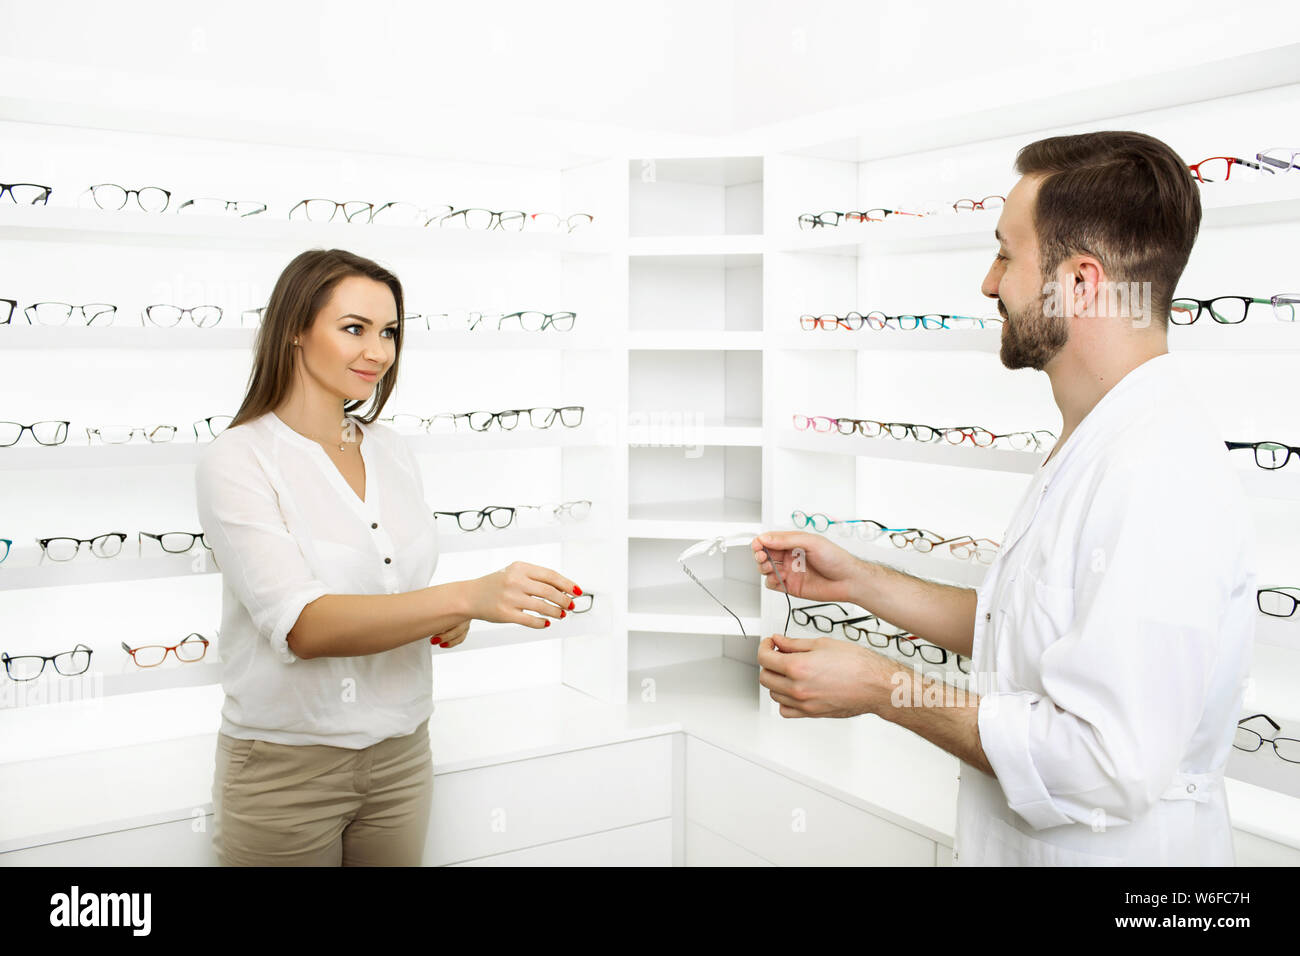 Ophthalmologist Woman Concept Stock Photos & Ophthalmologist